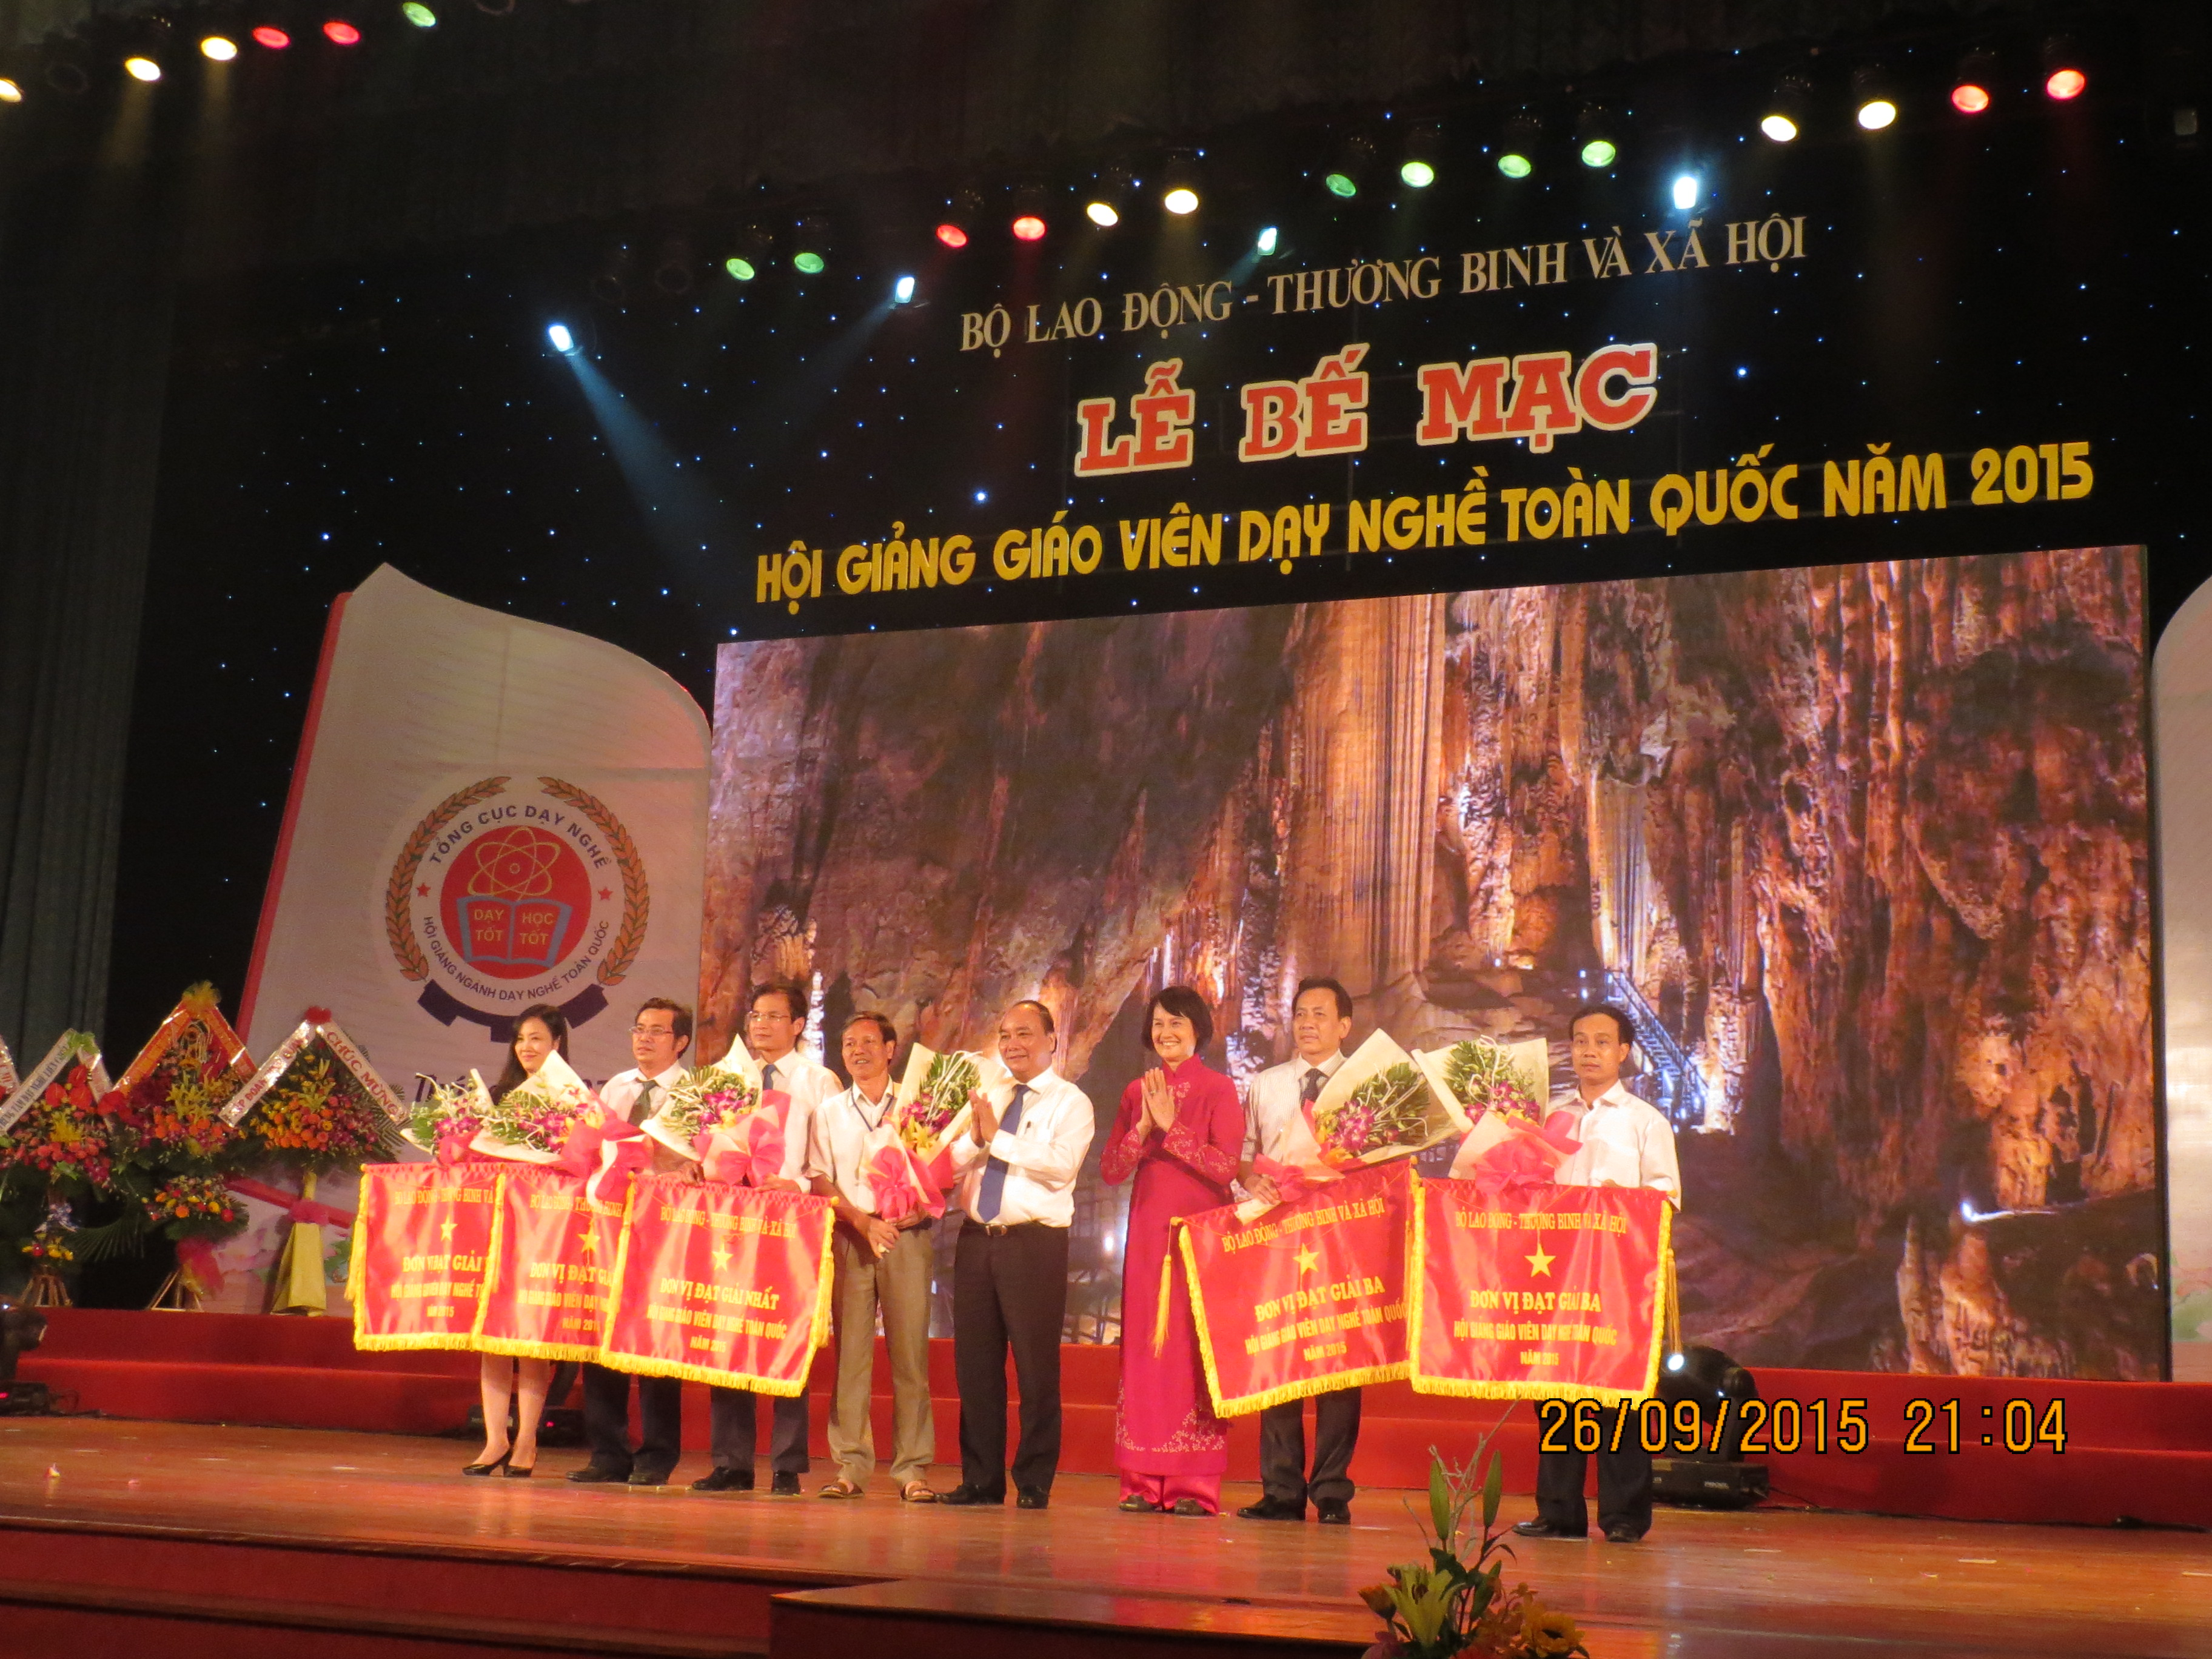 Member of Political Bureau, Deputy Prime Minister Nguyen Xuan Phuc and former Minister of Labour – Invalids & Social Affairs Nguyen Thi Hang present flag to first, second, third winning groups in Teachers' competition